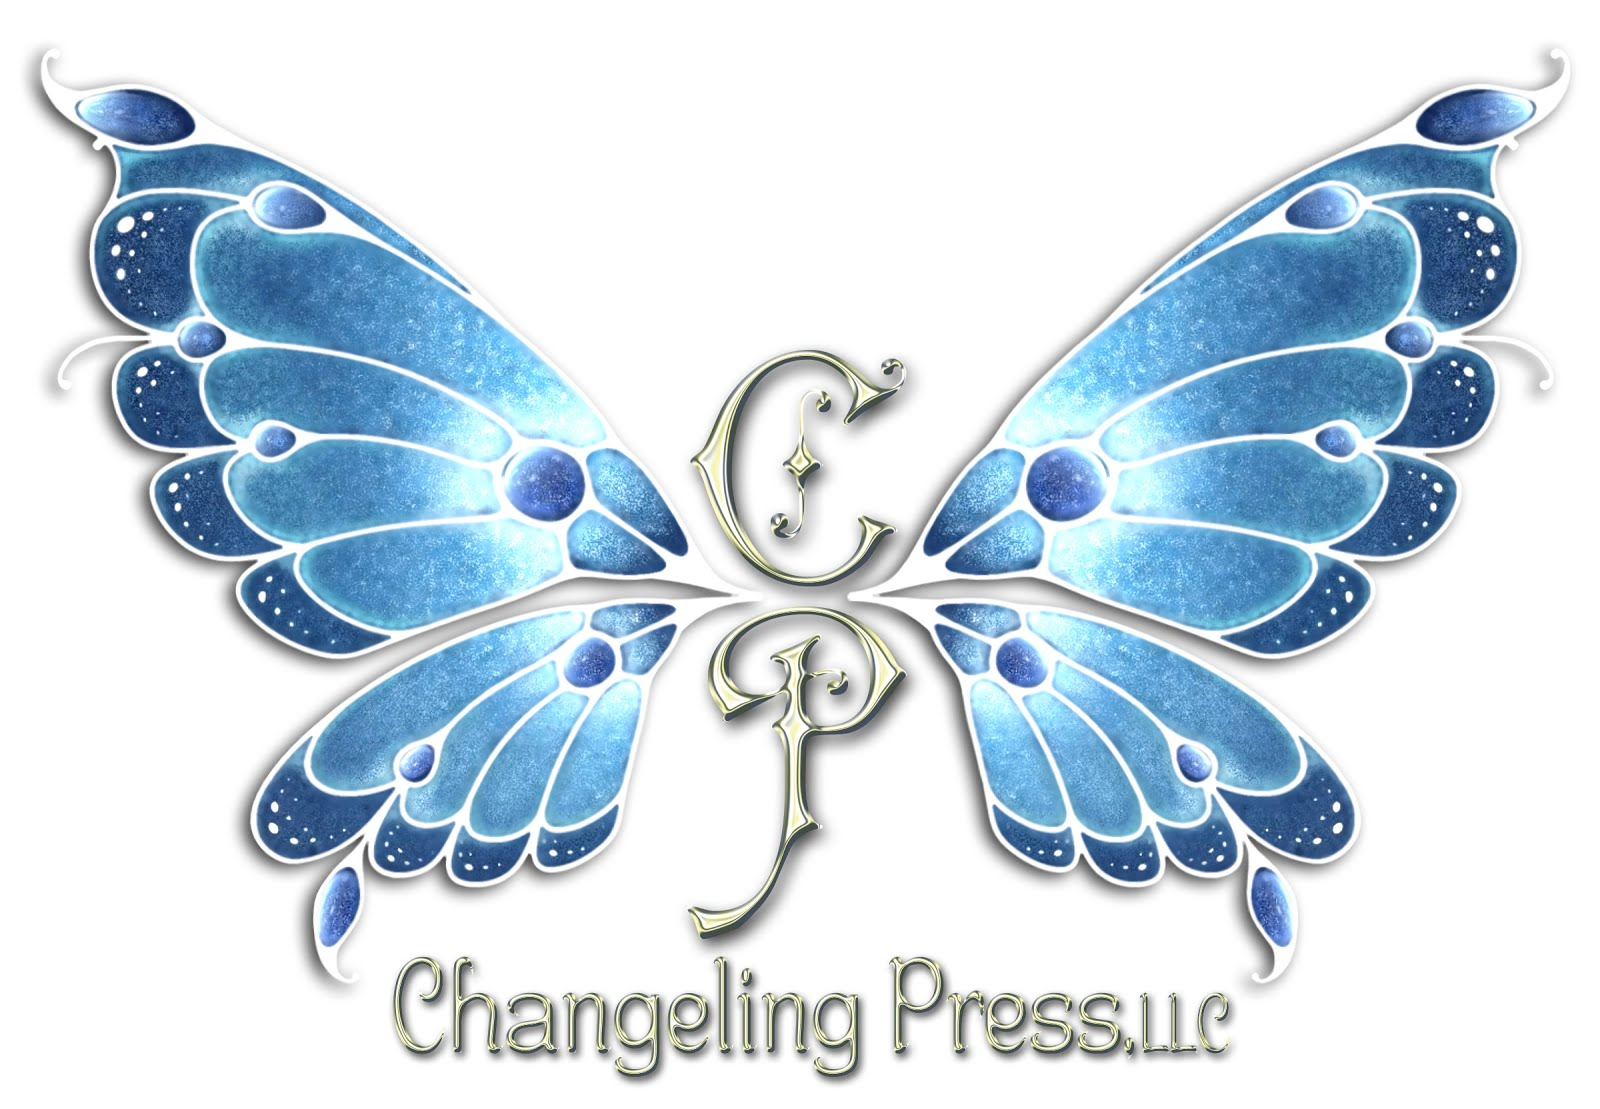 Find me at Changeling Press